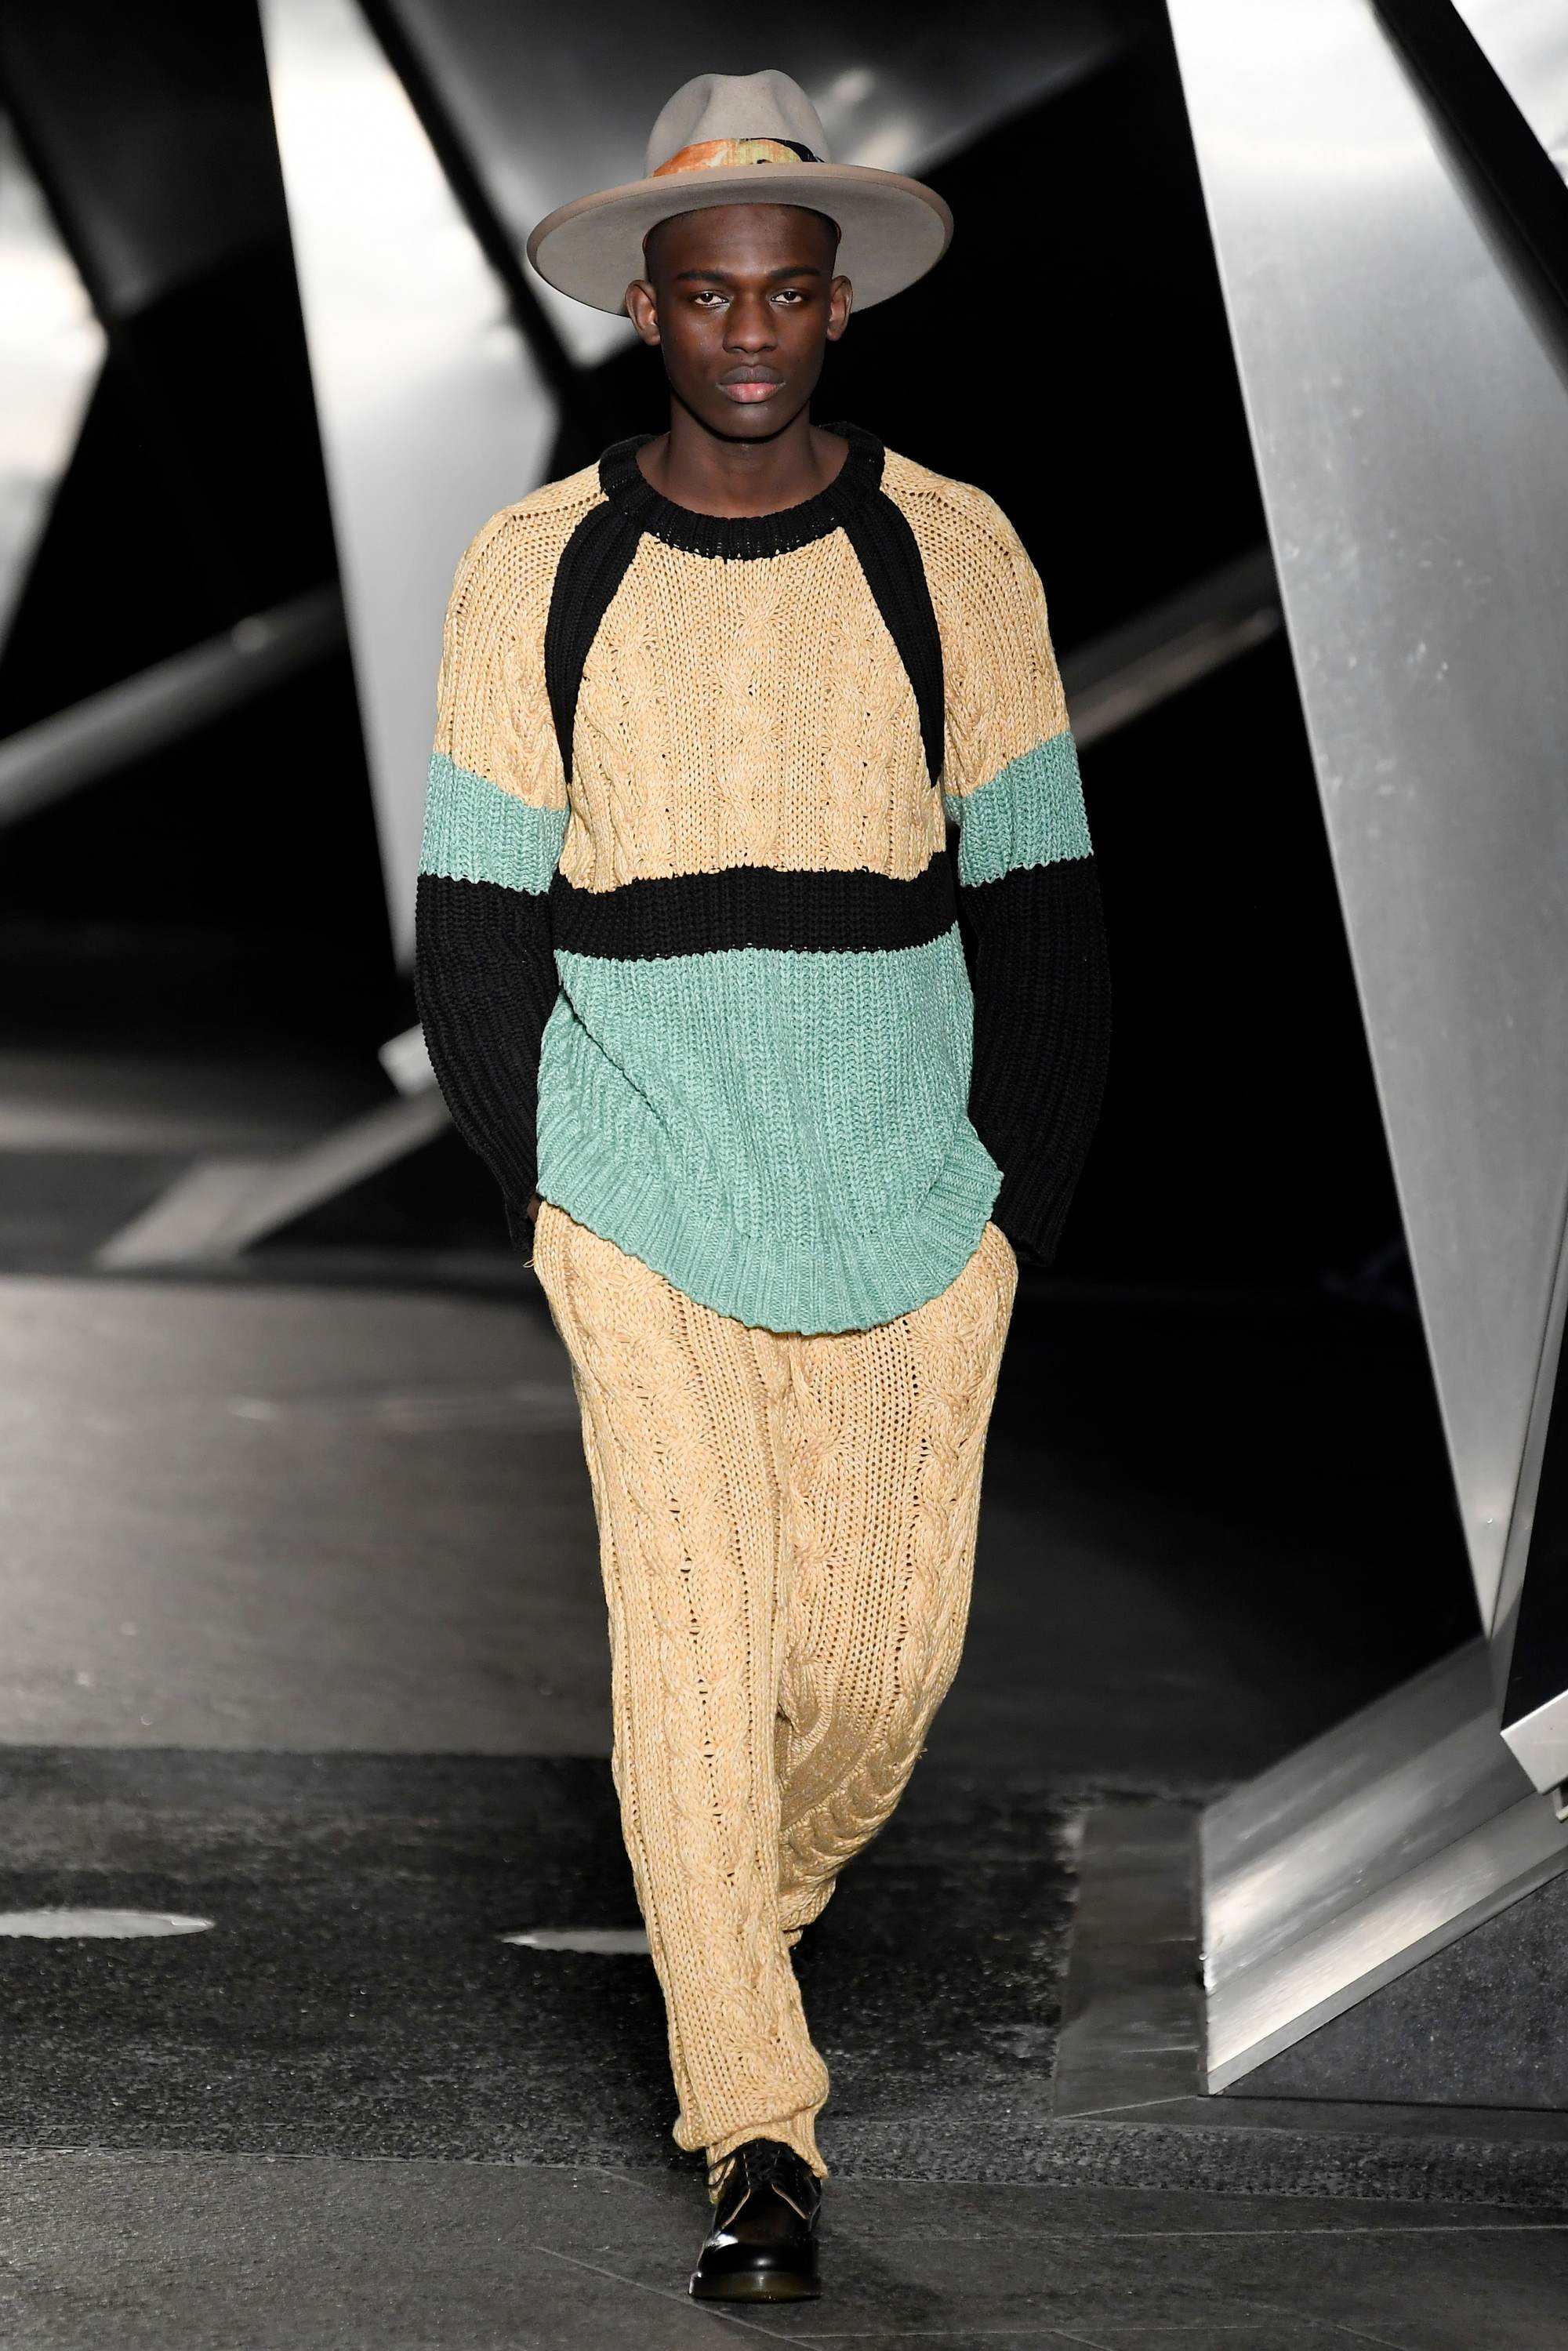 London Fashion Week Men's: Model on runway with fedora hat and yellow outfit.